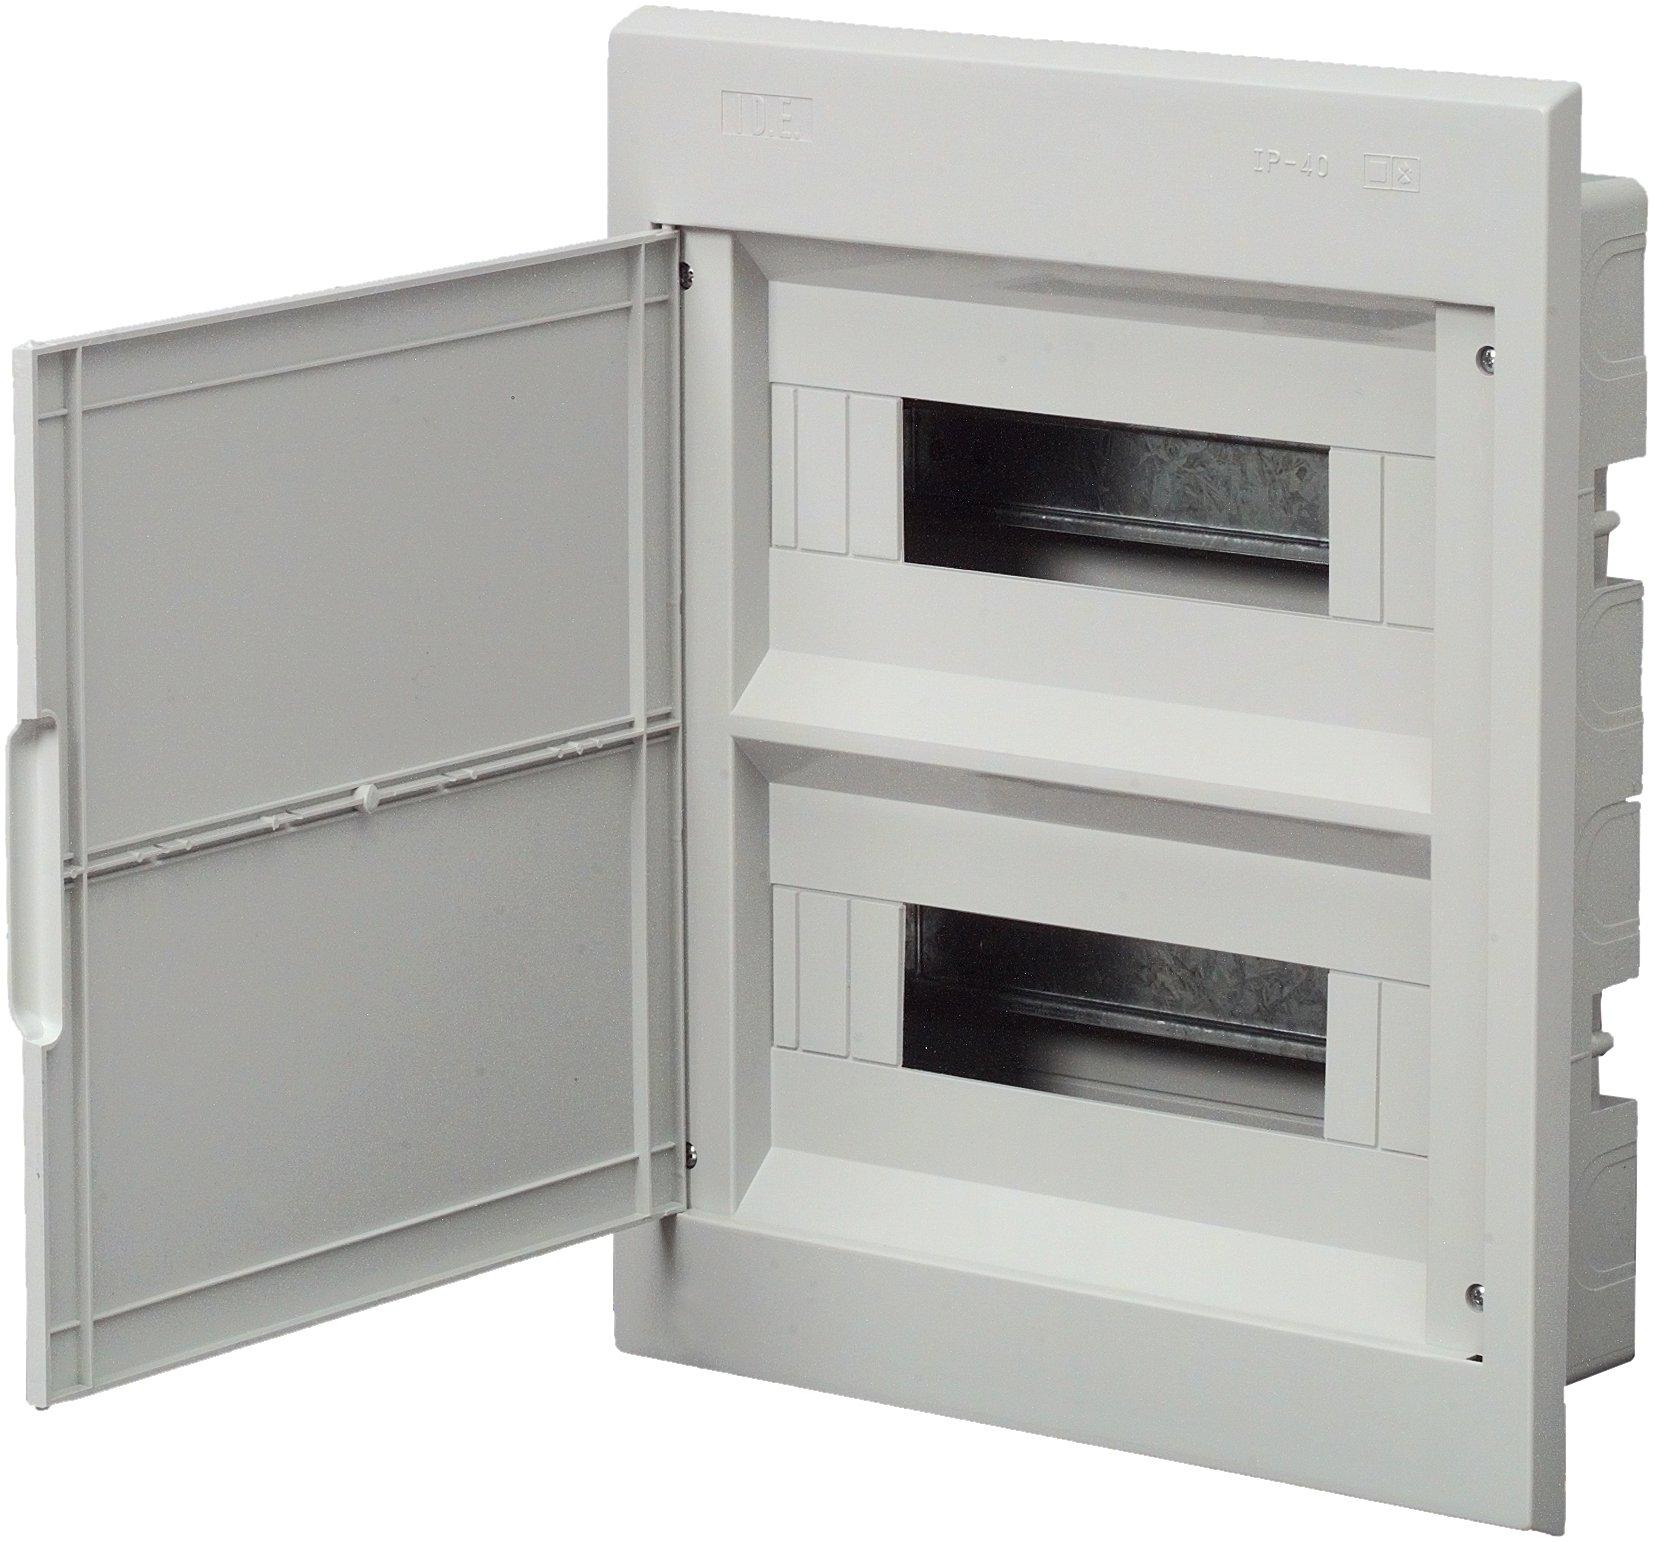 Unitec 40627Small Distribution Board Flush-Mounted with Door 2Rows IP30